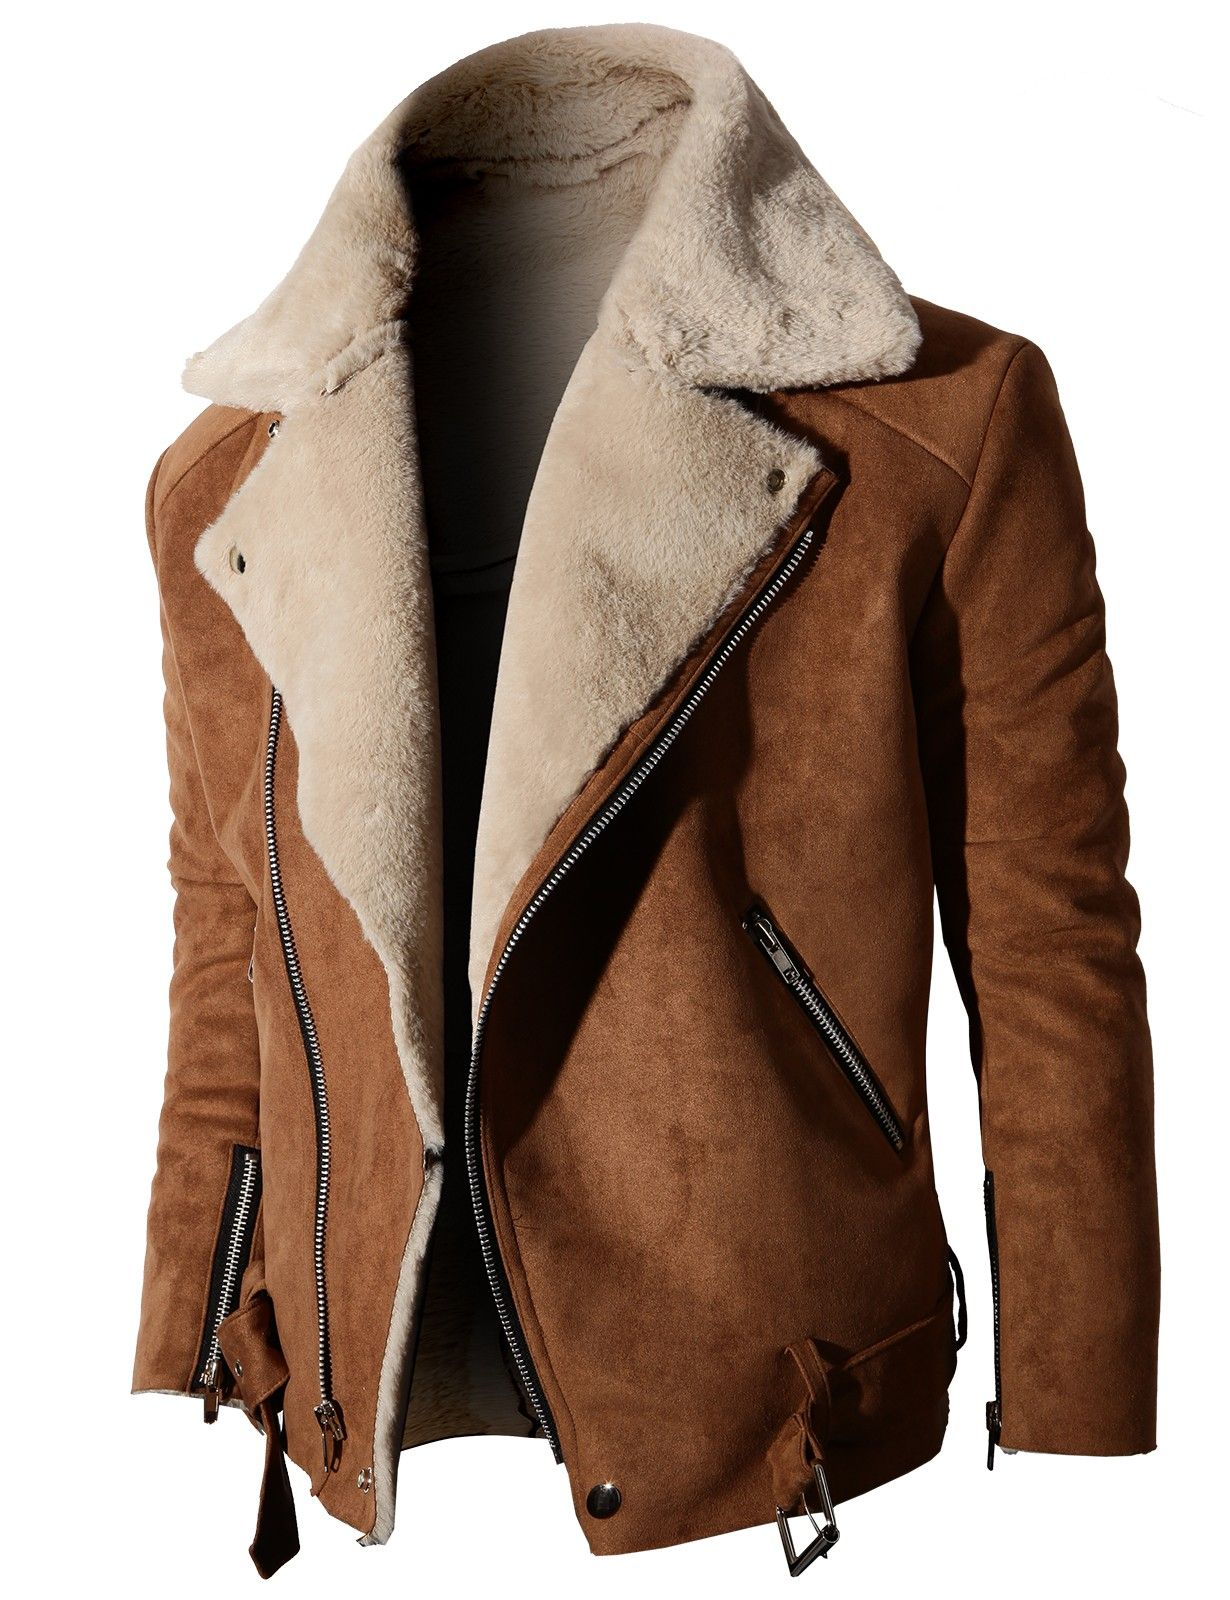 One jacket that I really like is brown is Kanada, is made of ...